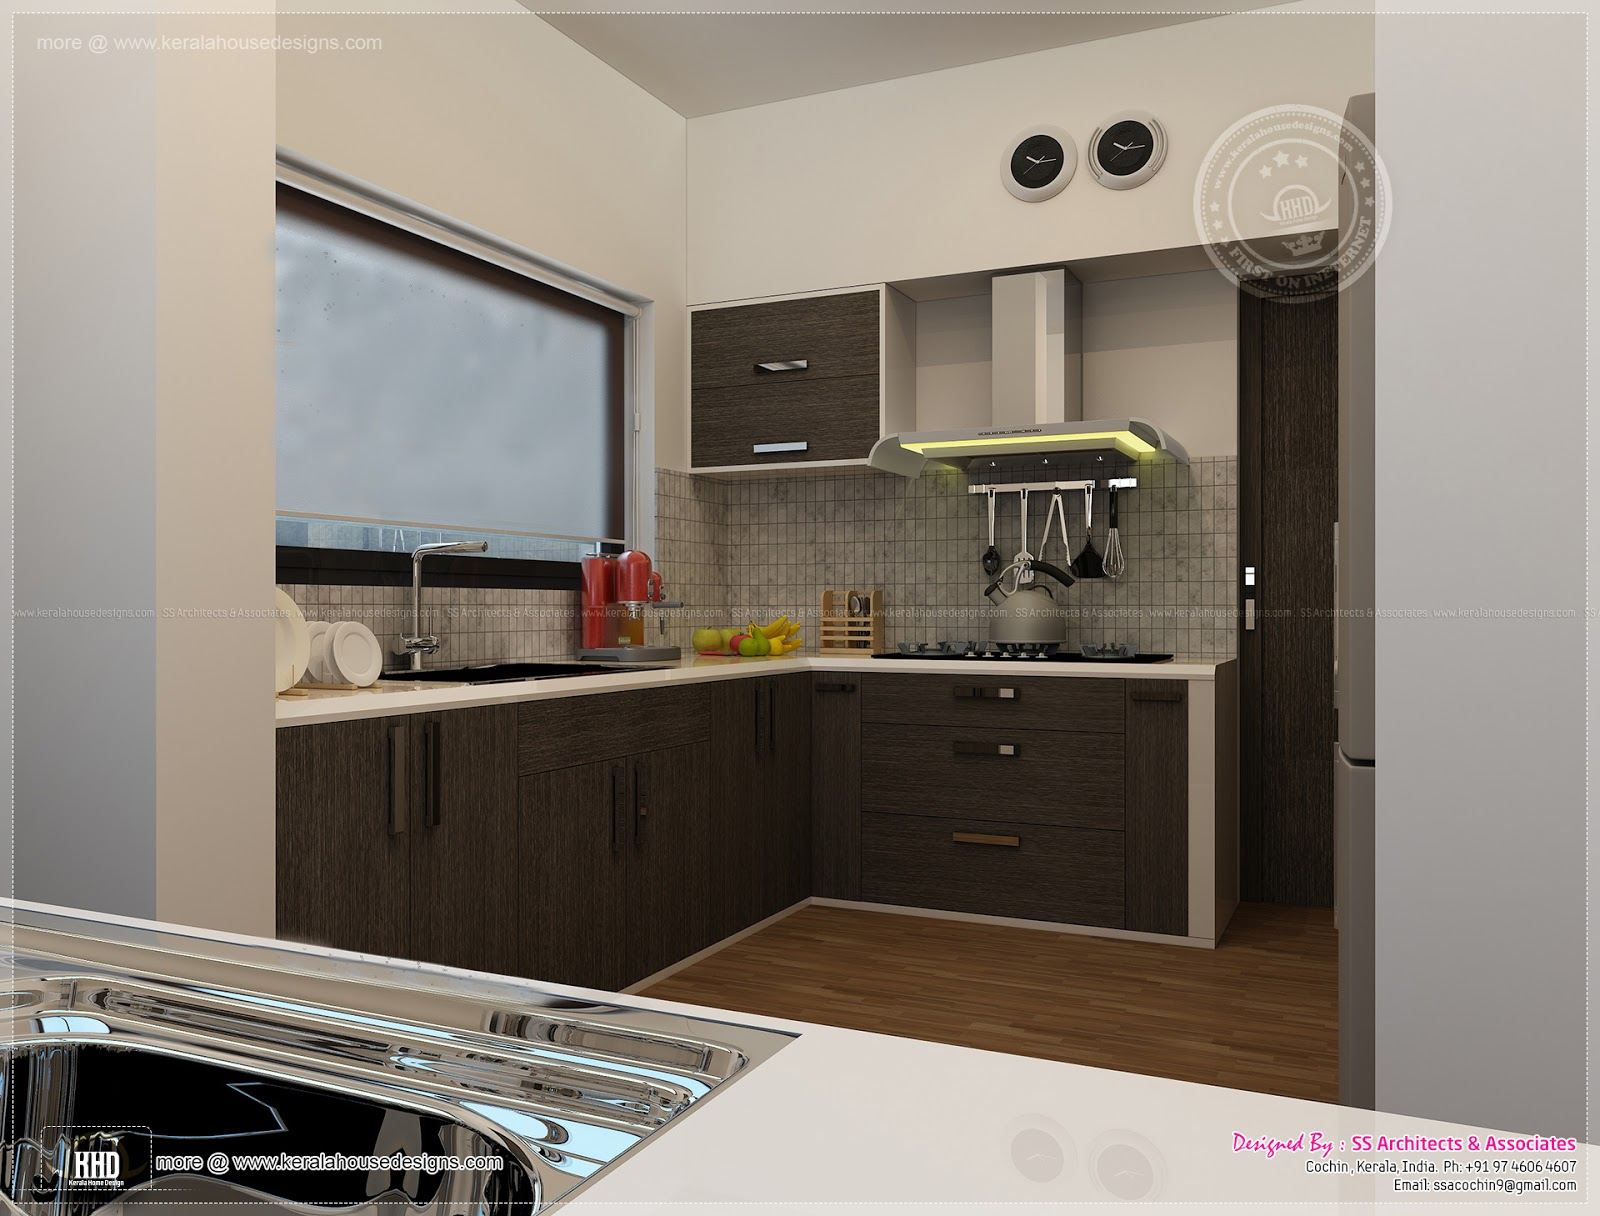 Kitchen interior views by ss architects cochin home Low cost interior design ideas india